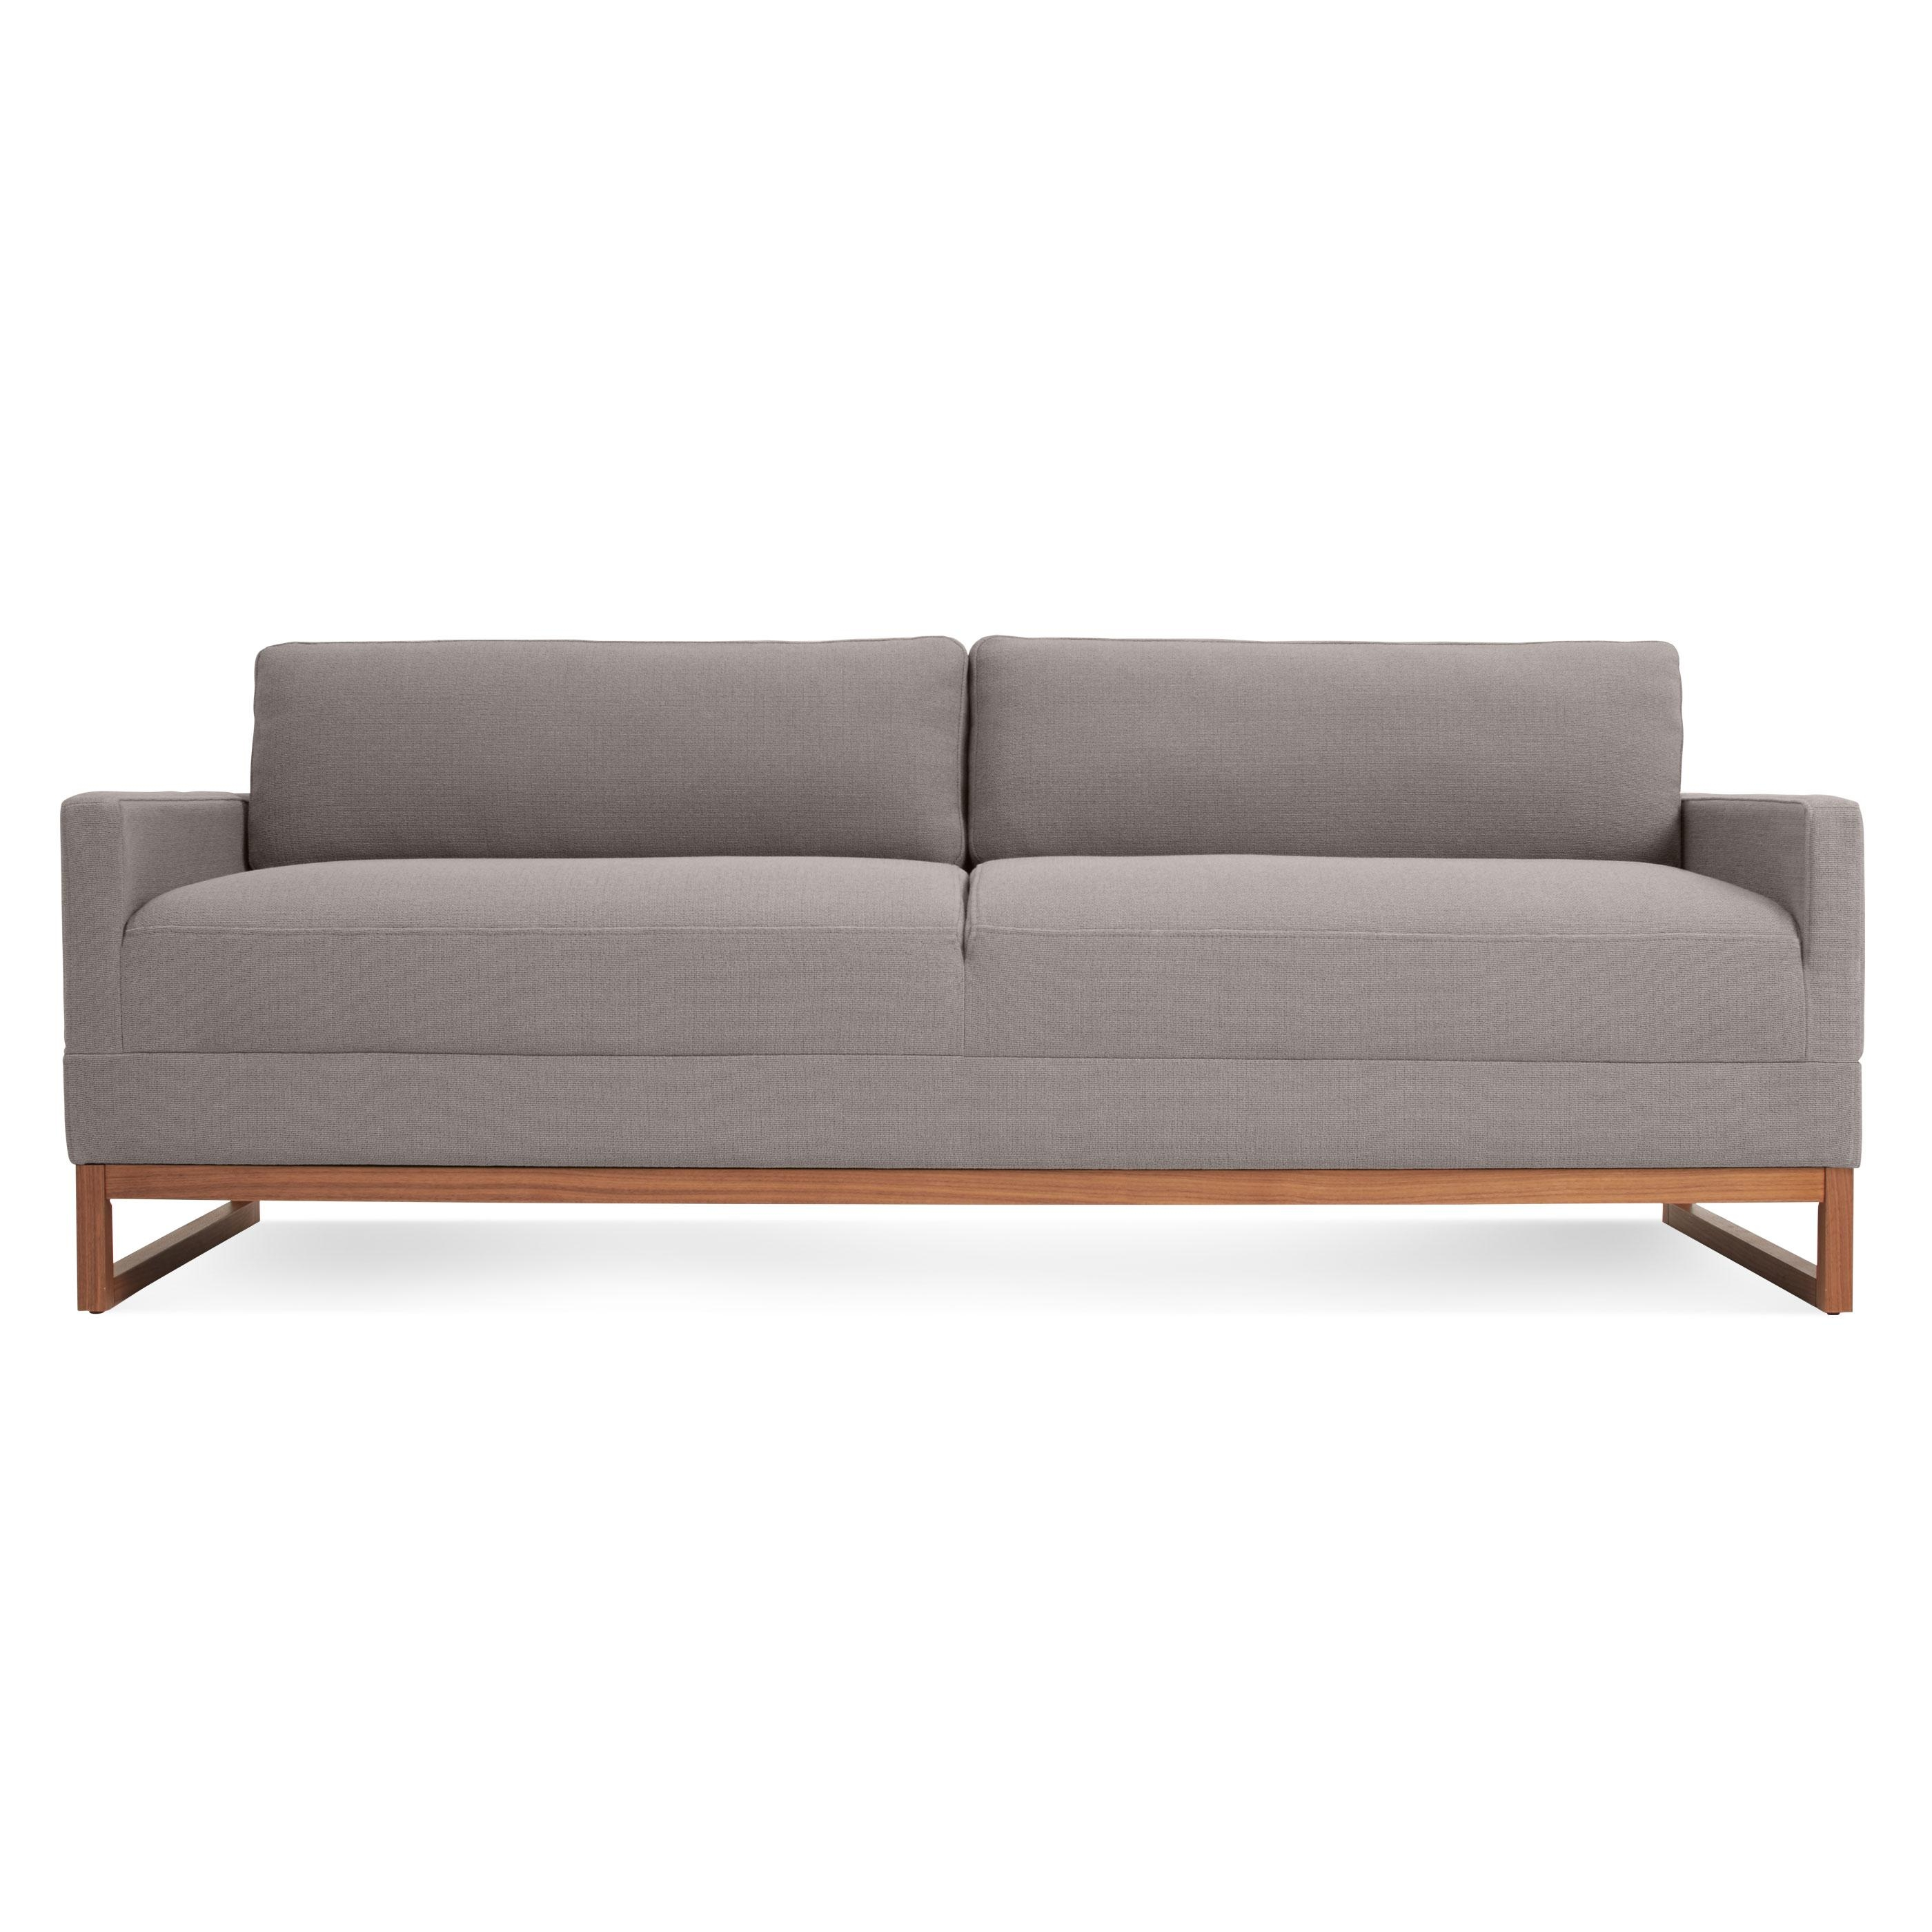 Furniture: Cheap Sectional Sofa | Large Sectional Sofas | Sears Couch Within Inexpensive Sectionals (Image 3 of 20)